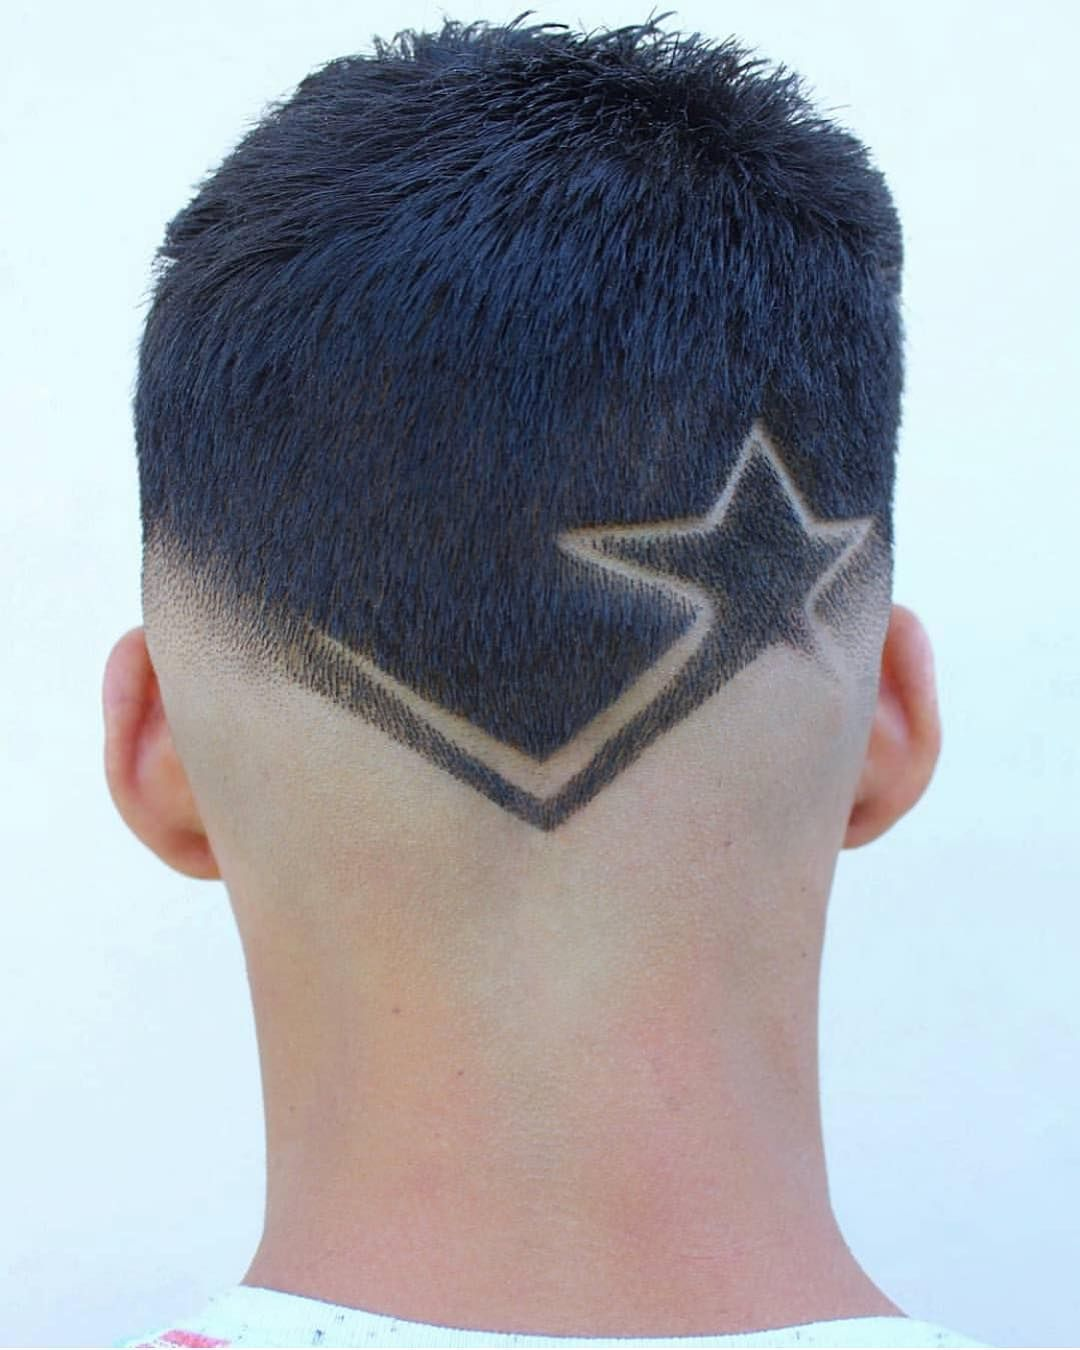 Need A Style Like This Download Thebarberpost App And Find A Barber Near You Powe Hair Designs For Men Haircuts For Men Hair Tattoo Designs